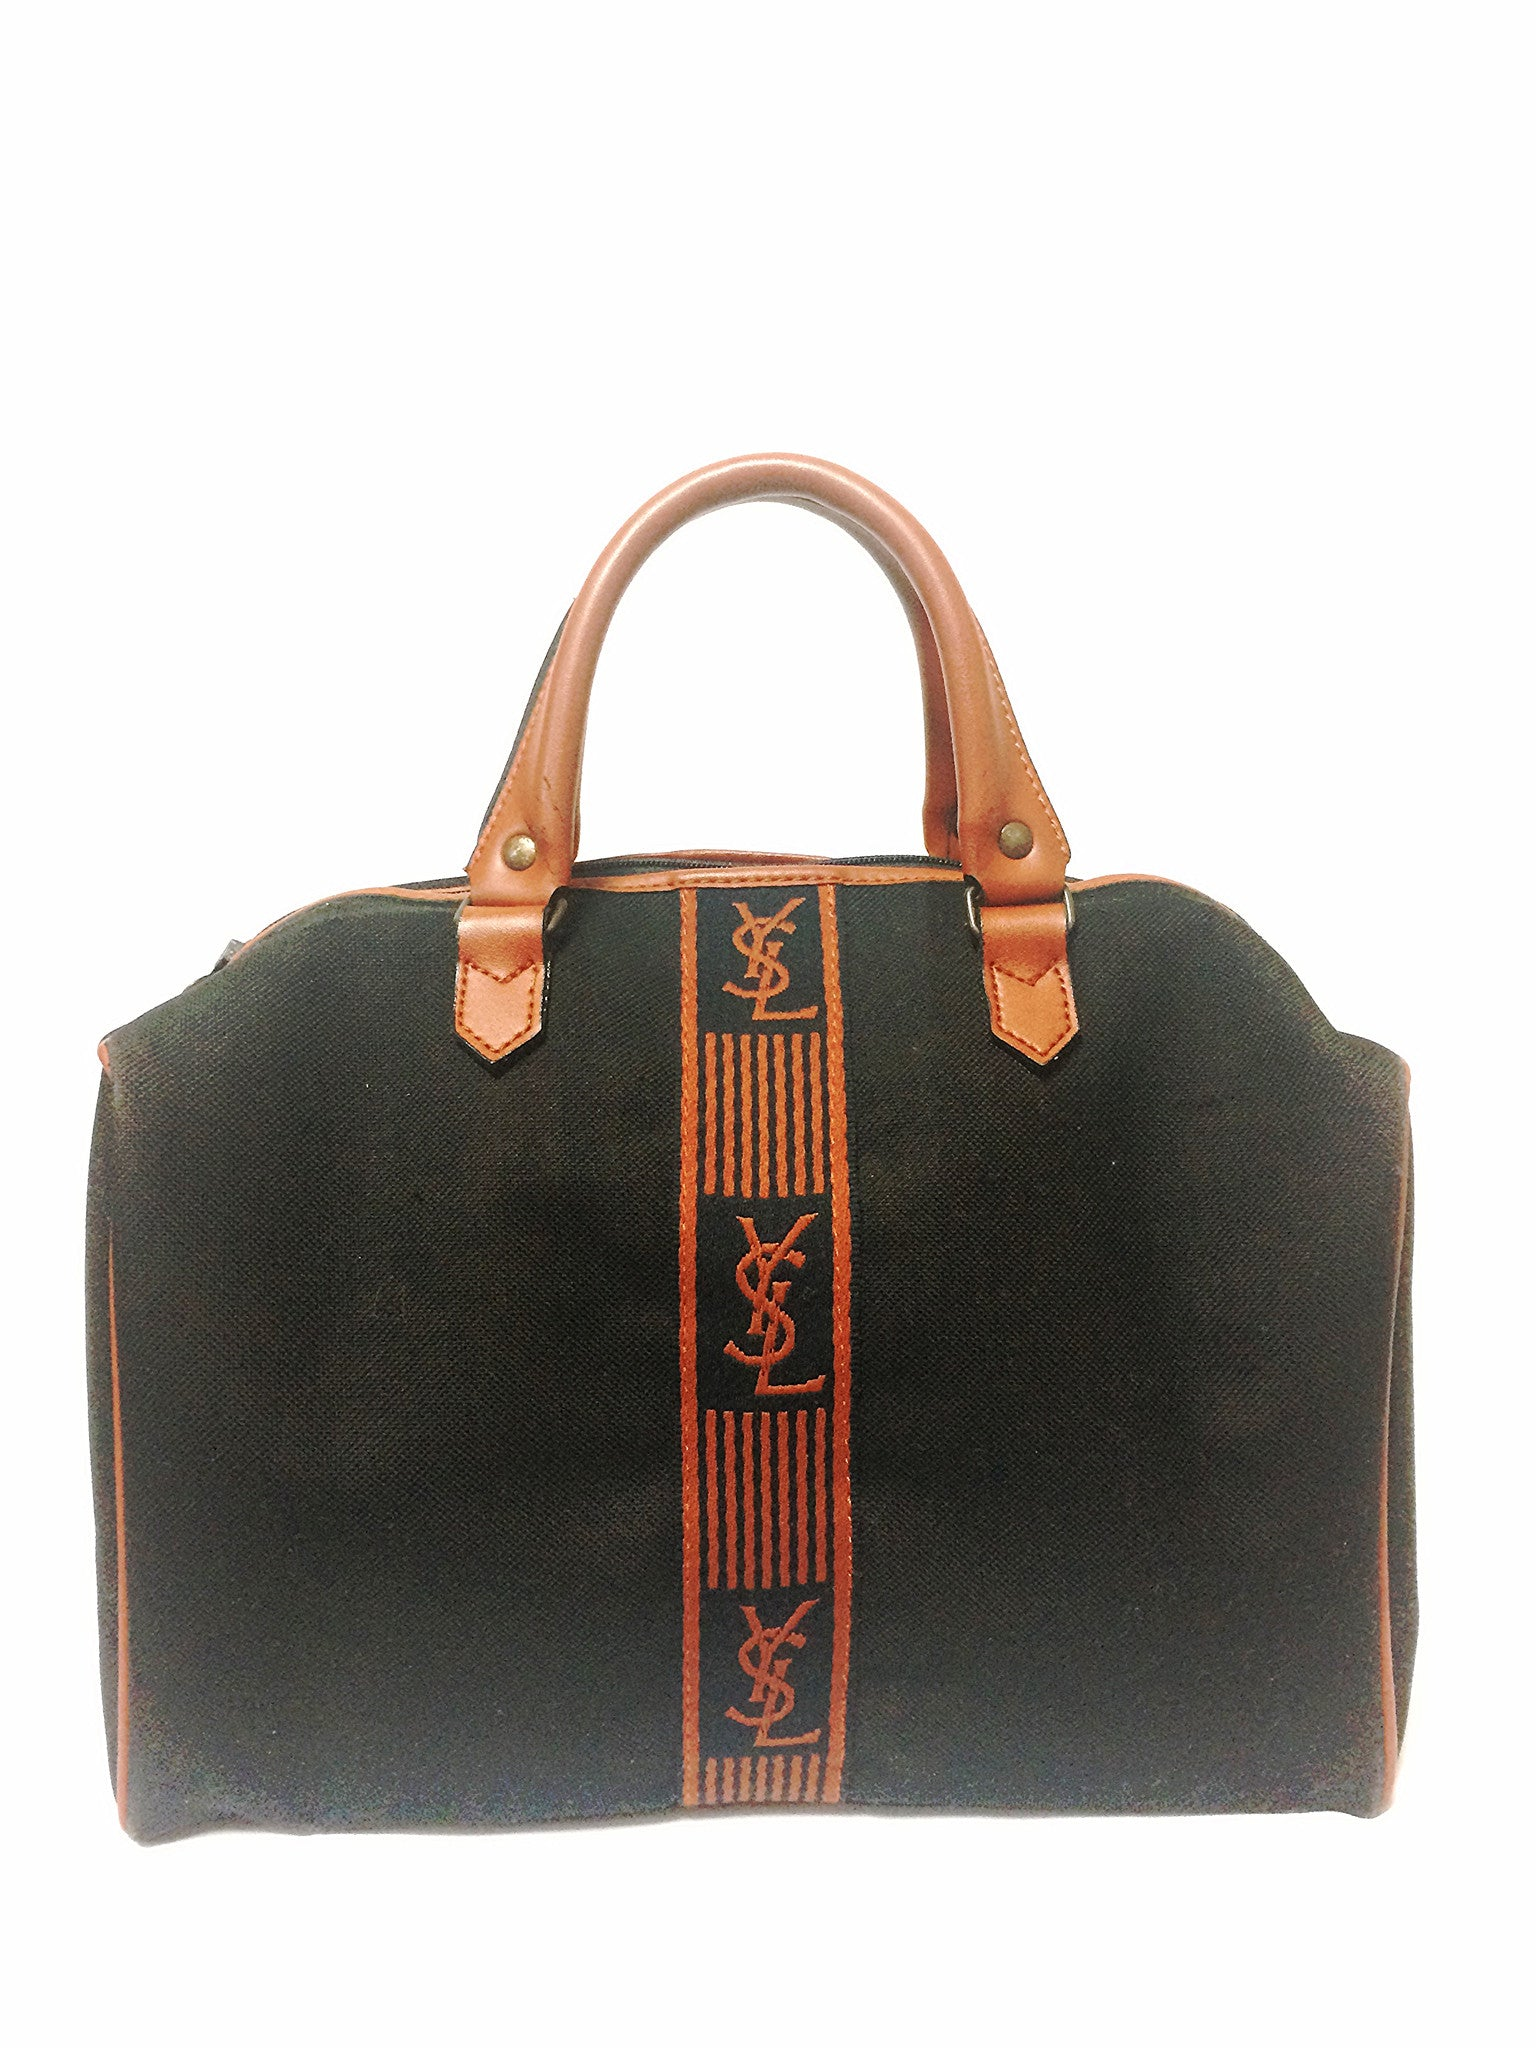 55ee62c29f42 Vintage Yves Saint Laurent black canvas duffle handbag